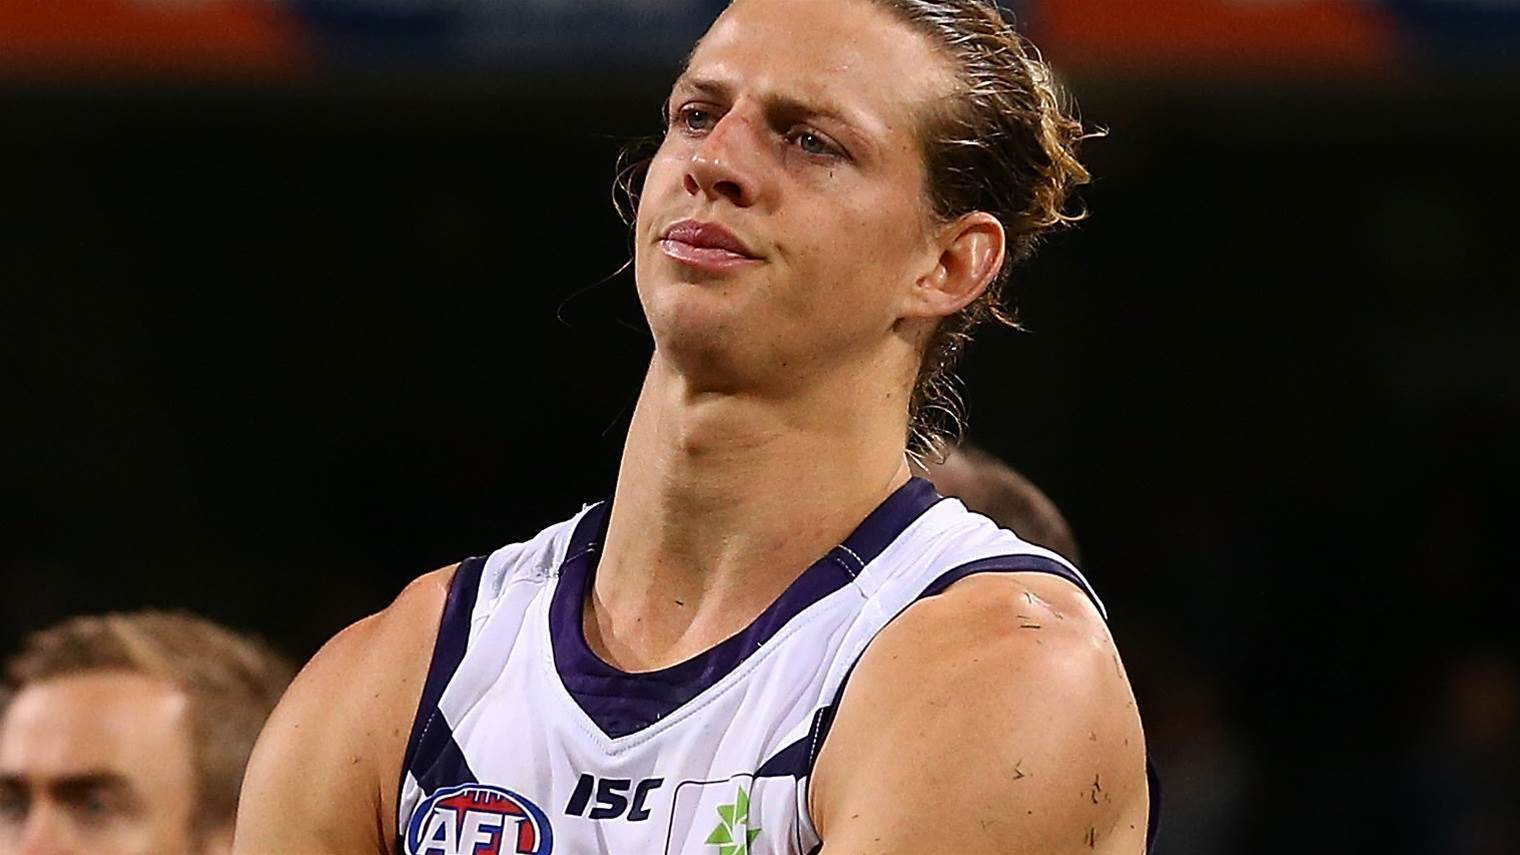 Fyfe to join Saints in 2018